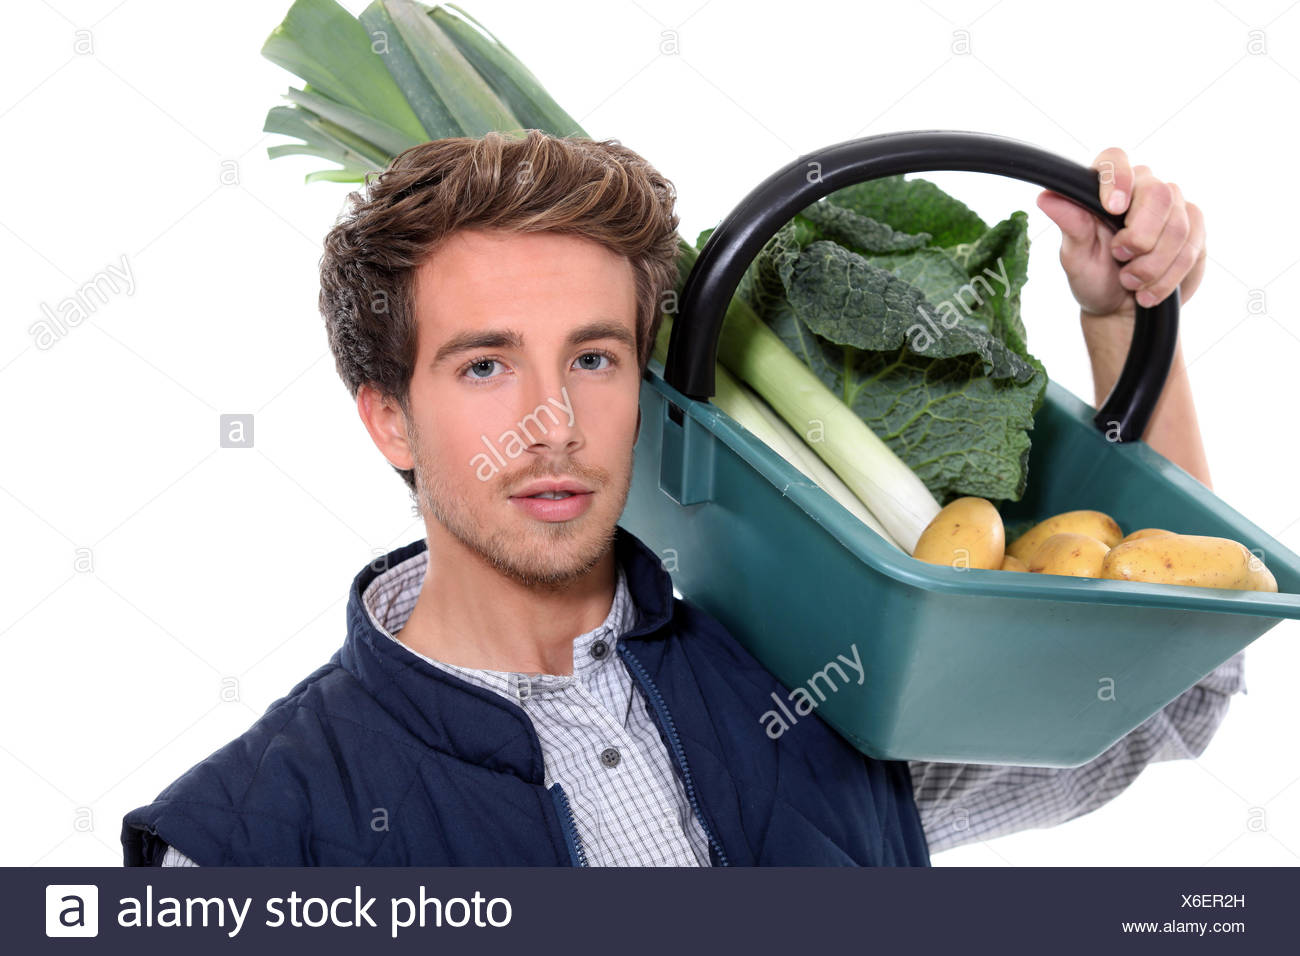 young farmer with a vegetables basket - Stock Image